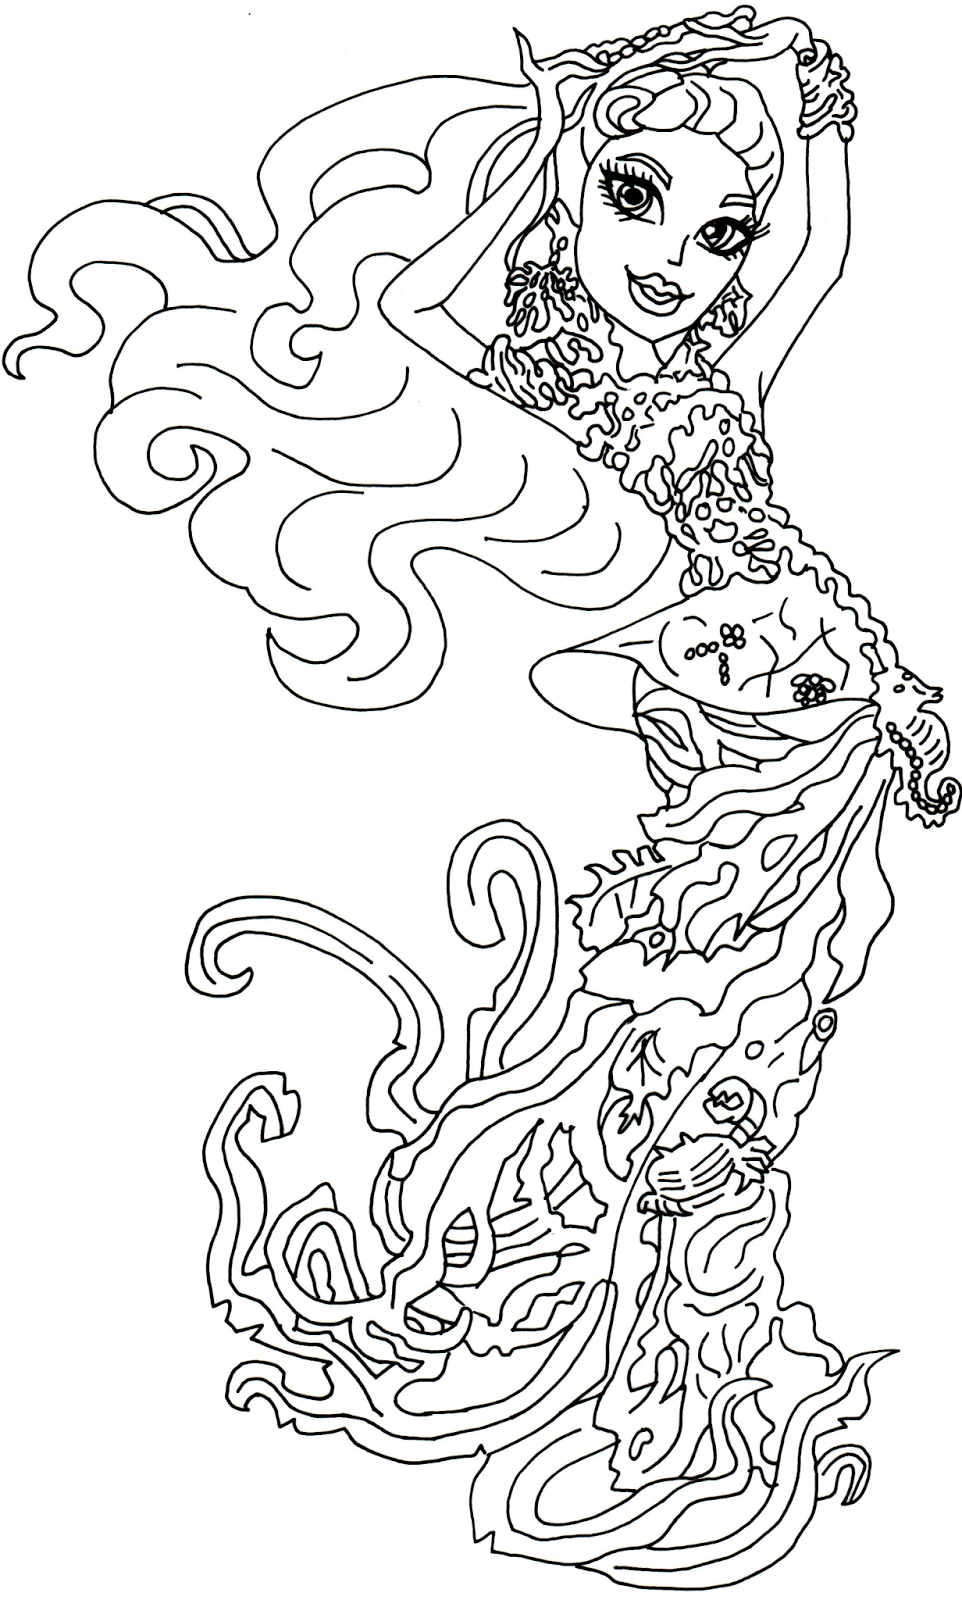 Moster High Coloring Pages Cool Monster High Coloring Pages